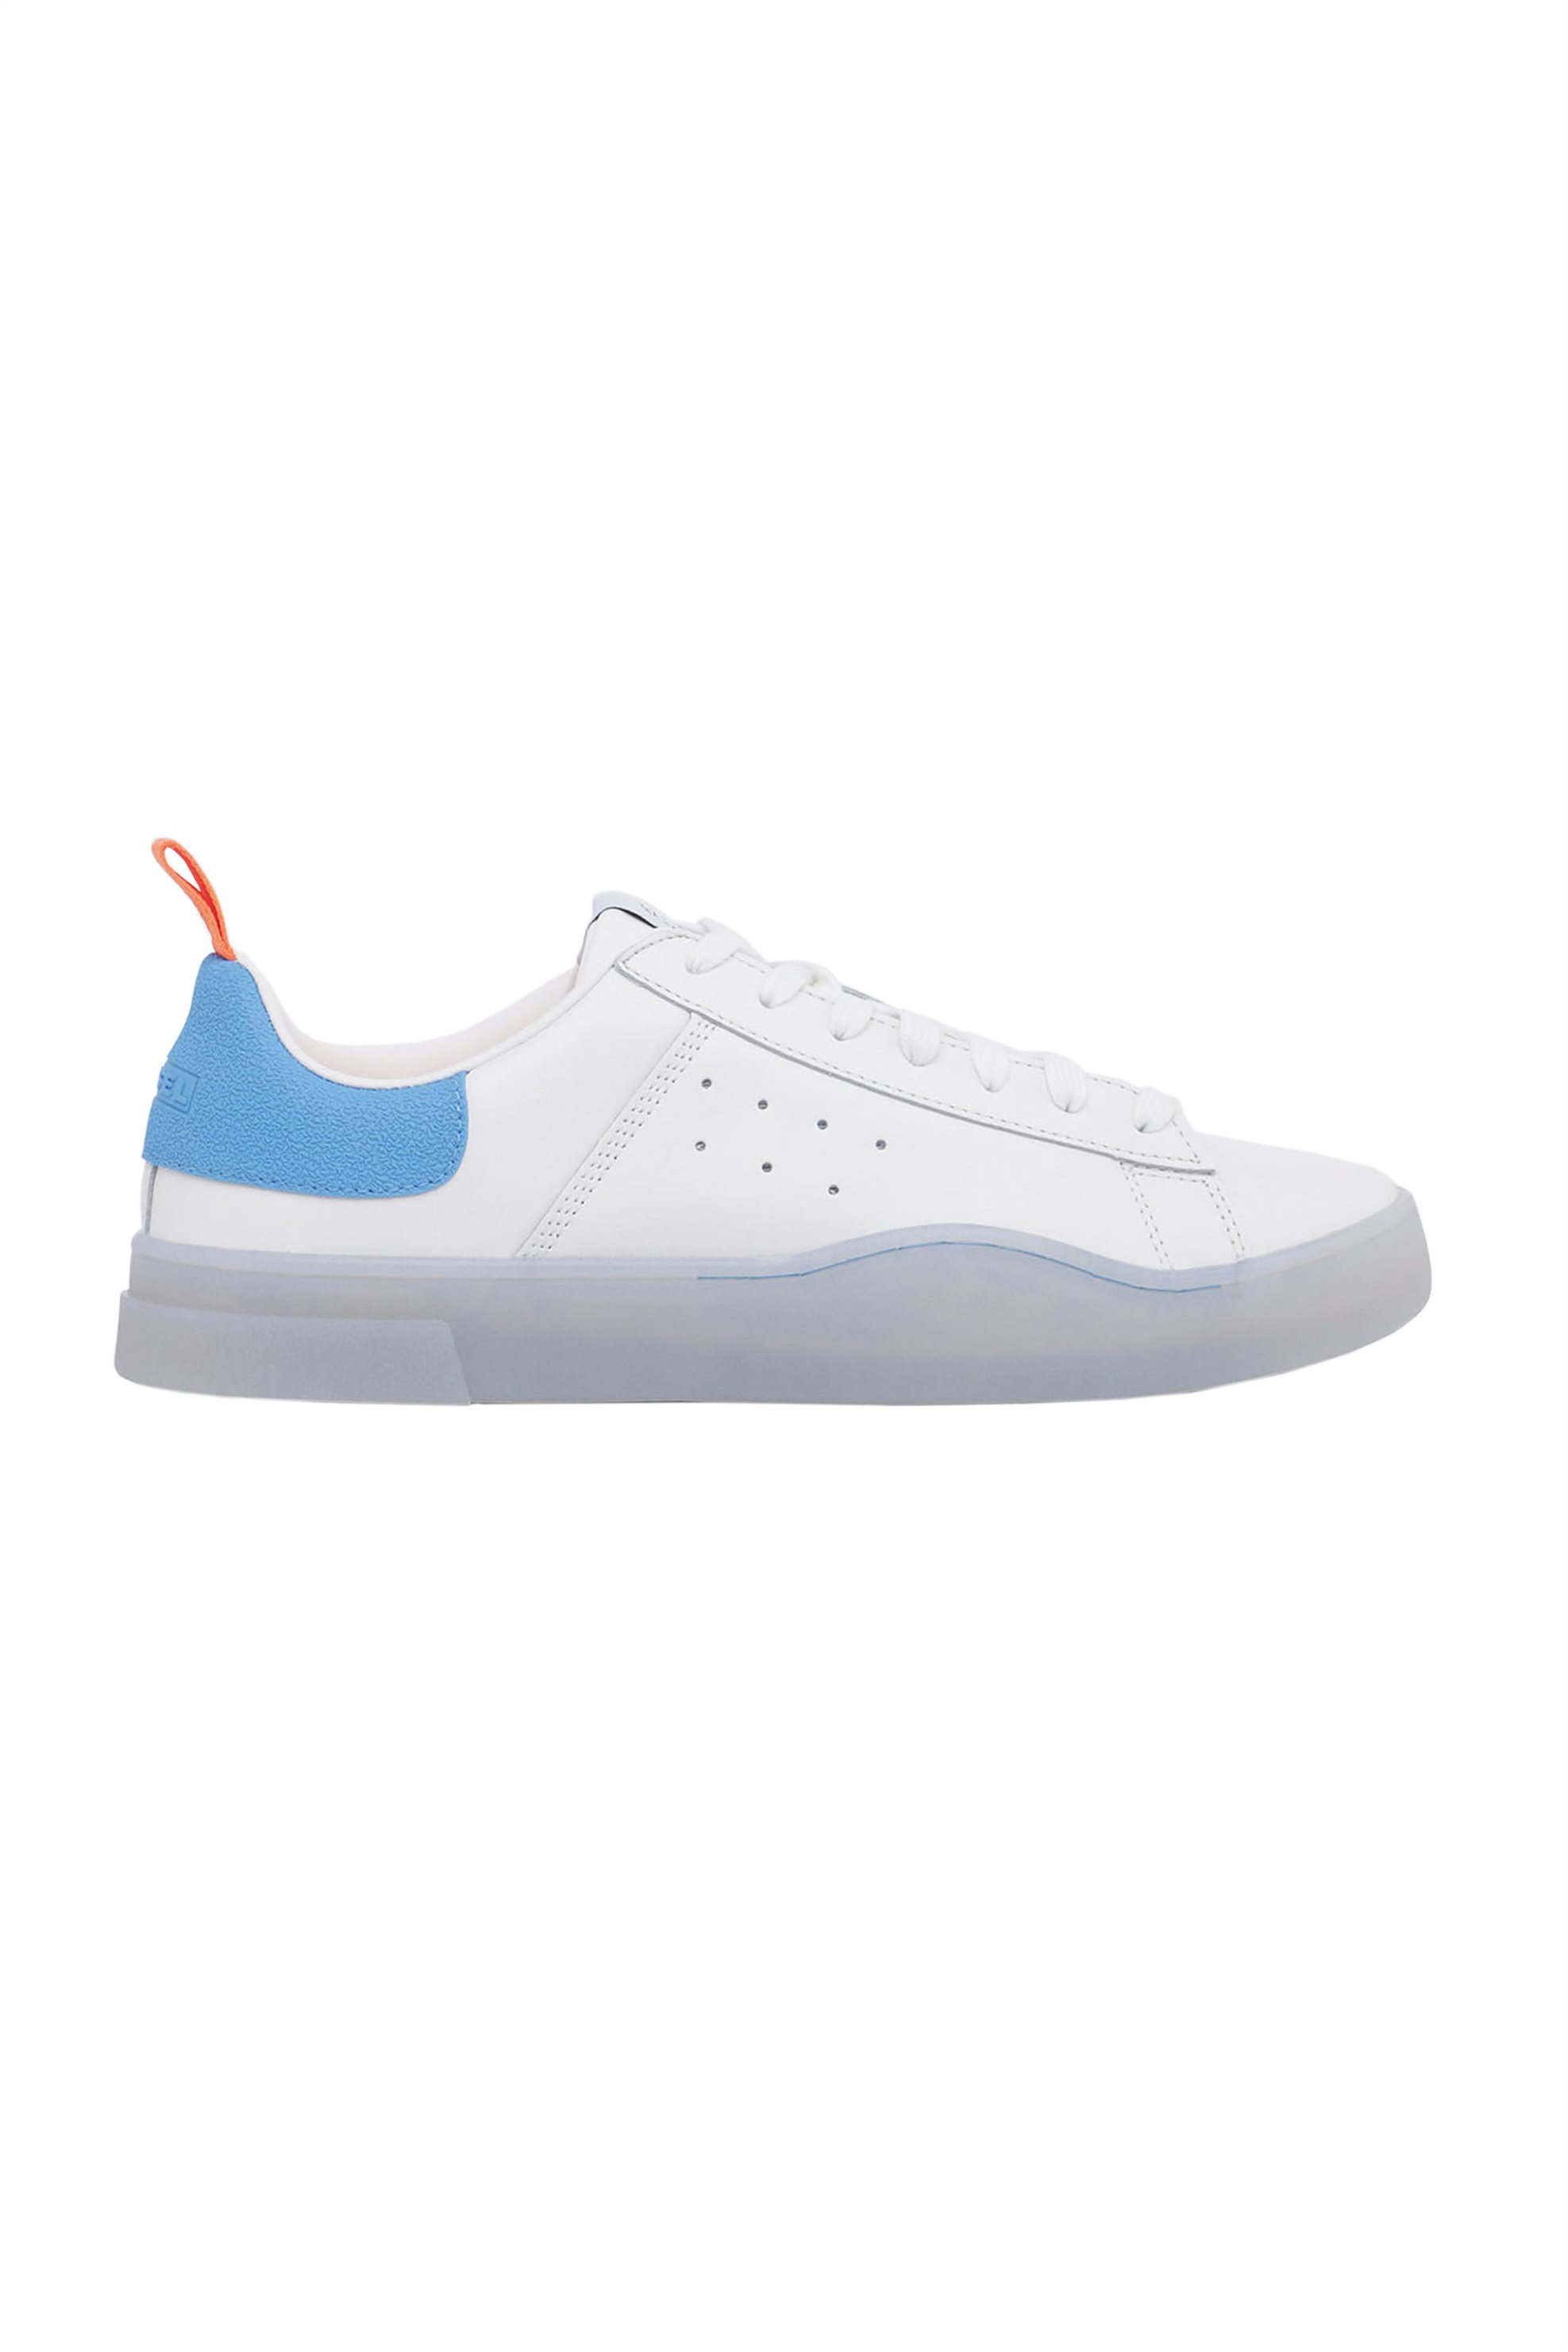 d956b6c9d53 Notos Diesel ανδρικά sneakers με κορδόνια S Clever Low – Y01748 P2282 –  Λευκό